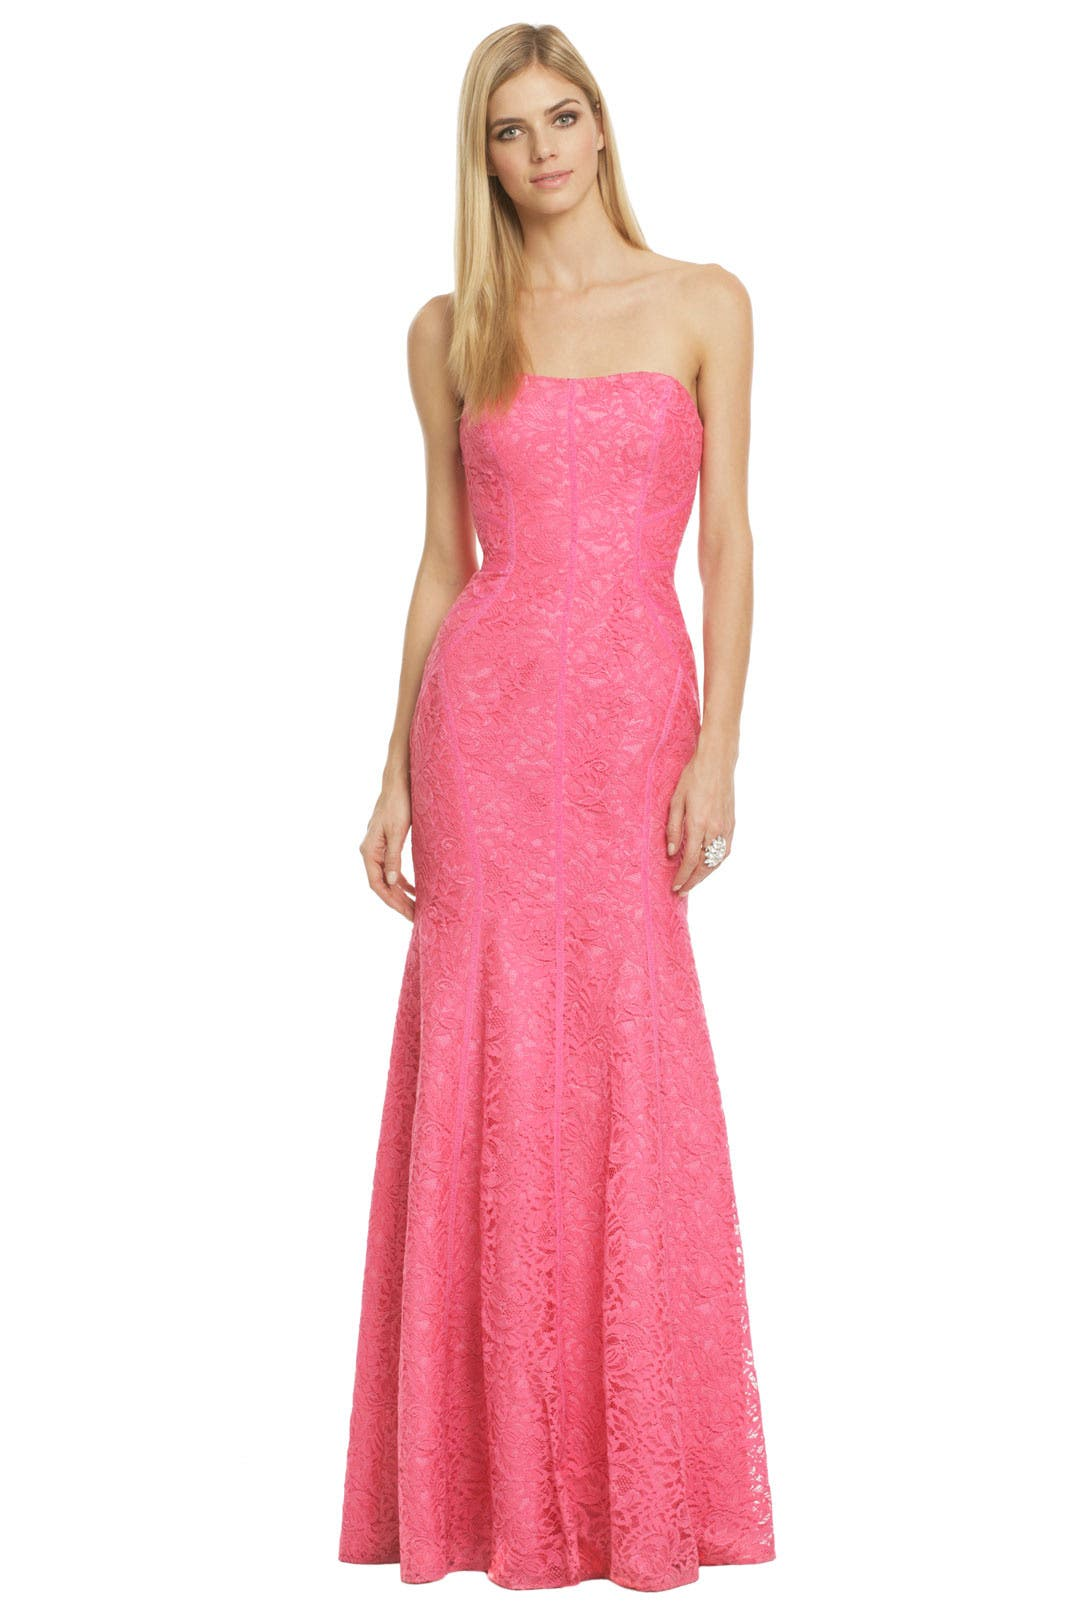 Sweet As Candy Gown by ML Monique Lhuillier for $103 | Rent the Runway